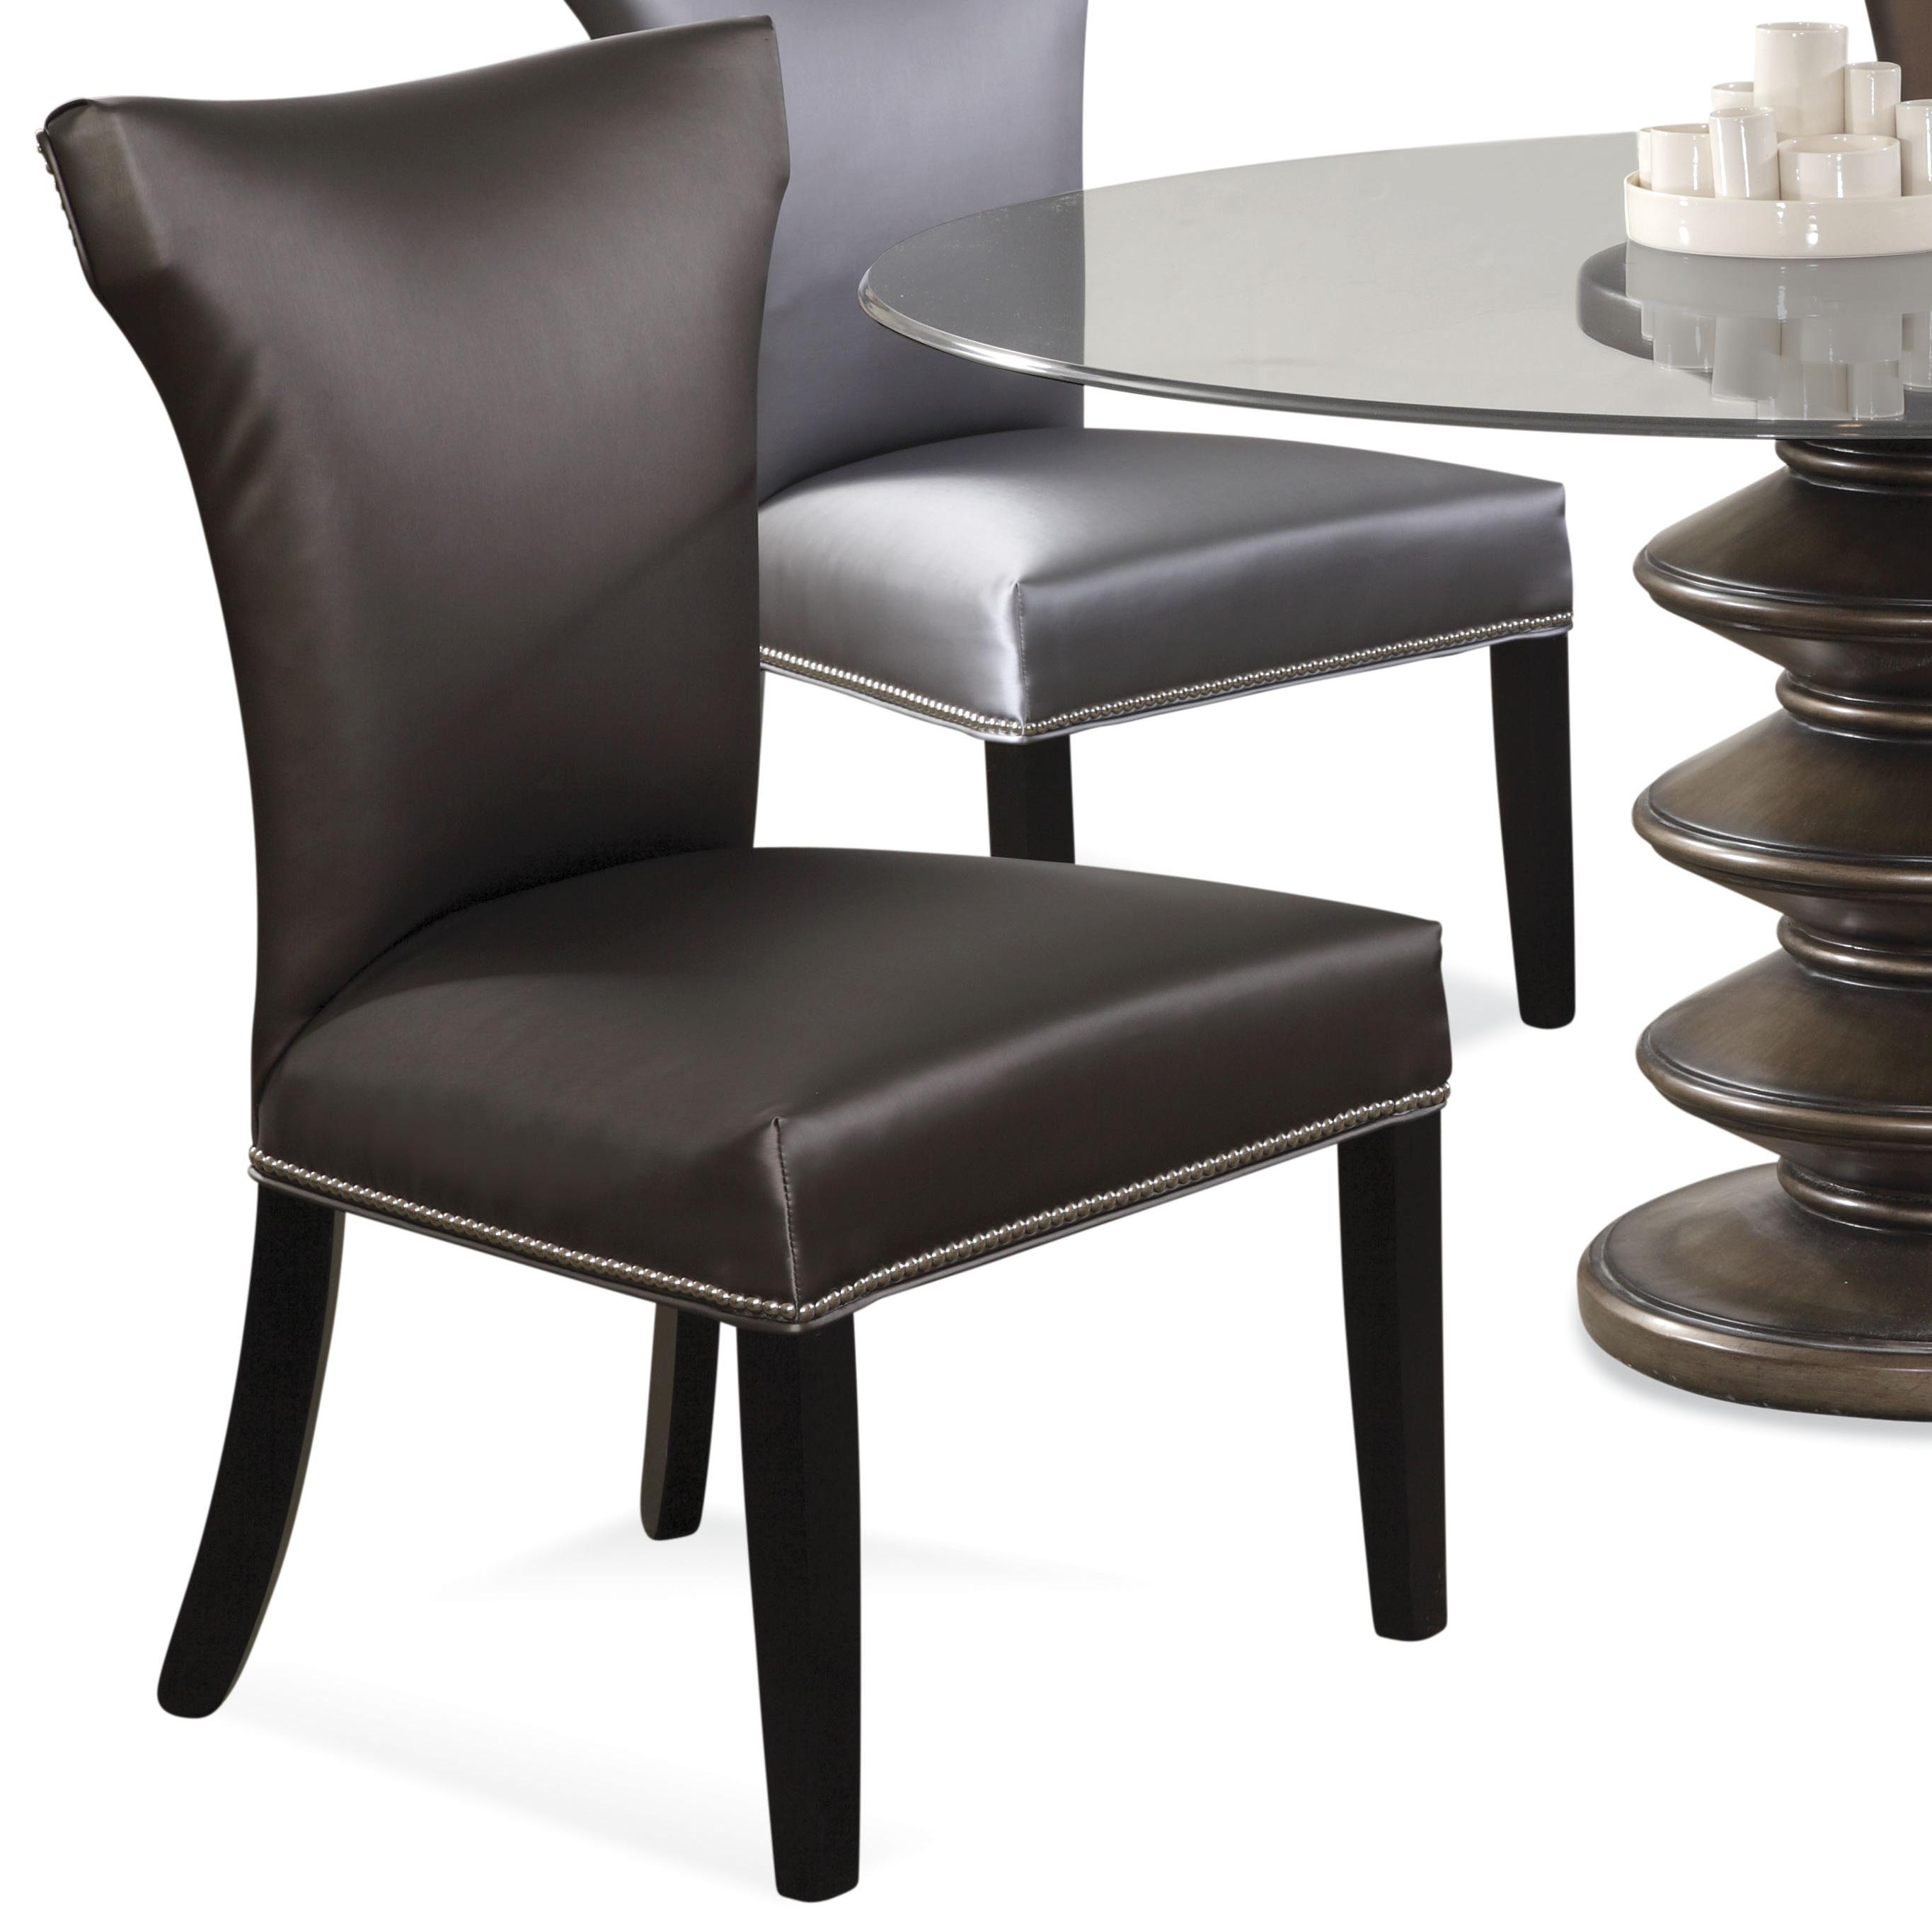 Parson chair black leather dining chair set of 4 the home for Black leather parsons chairs